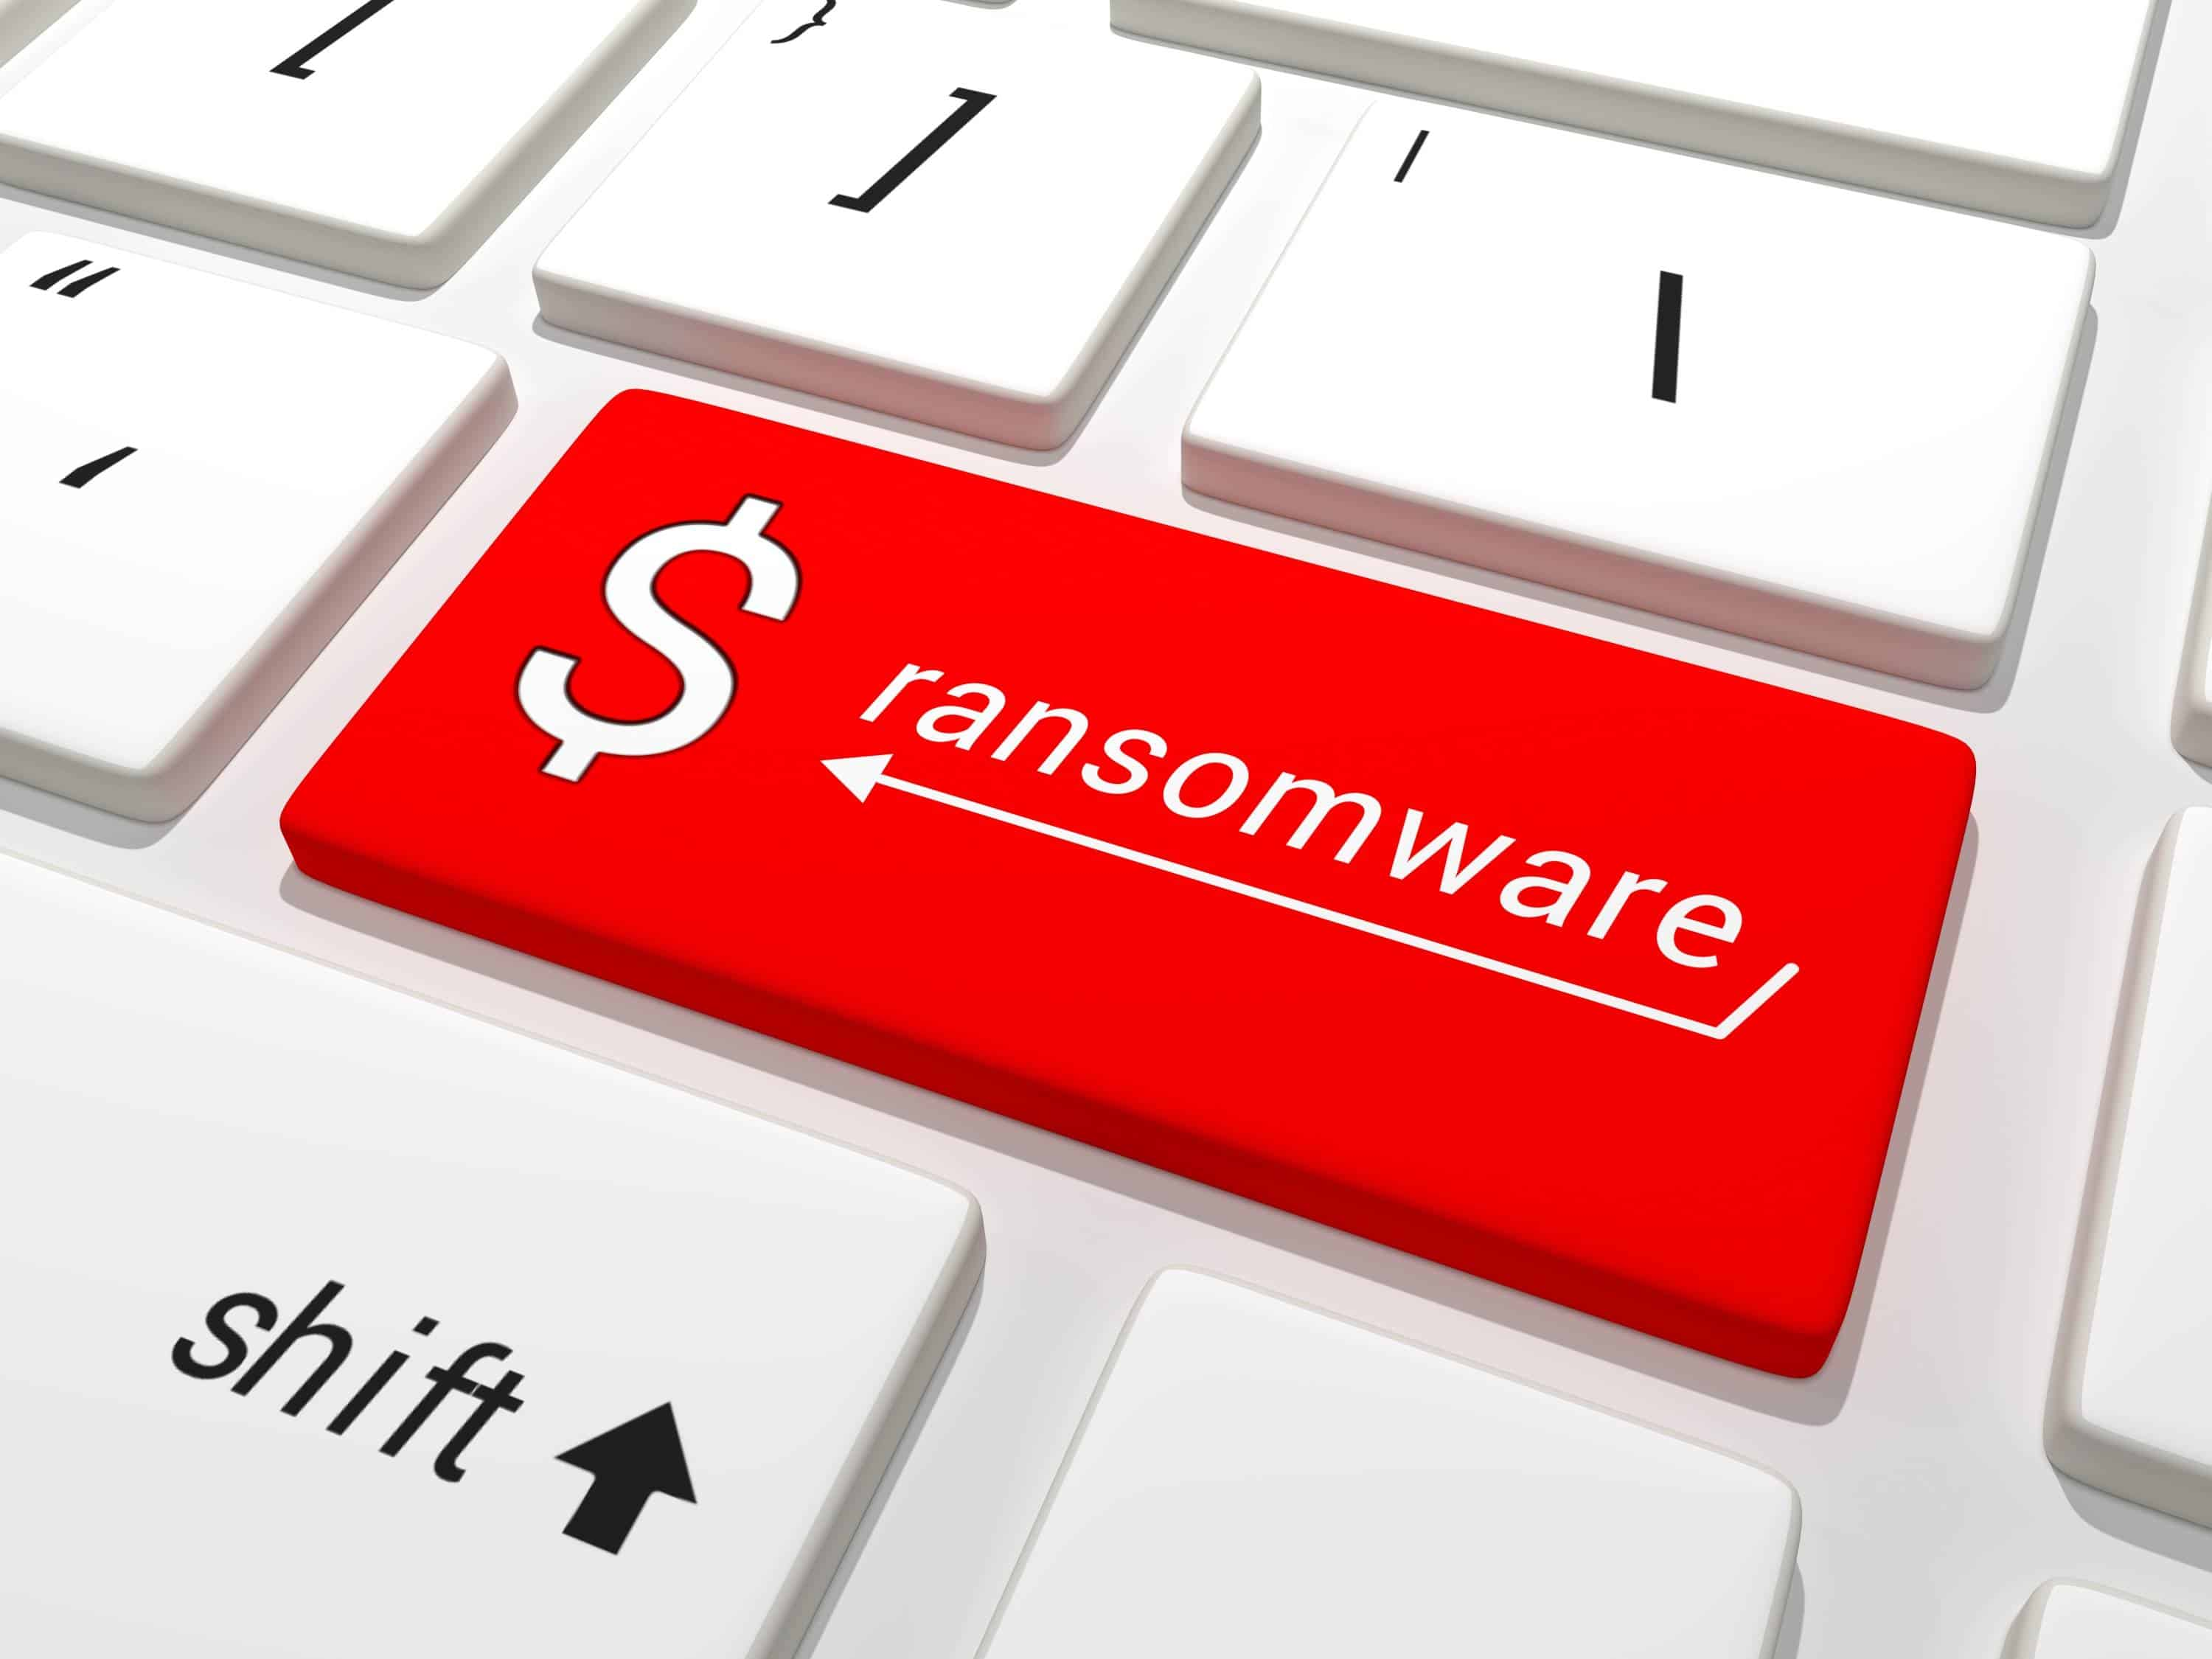 Health IT Vendor Restores EHR Access Following Ransomware Attack